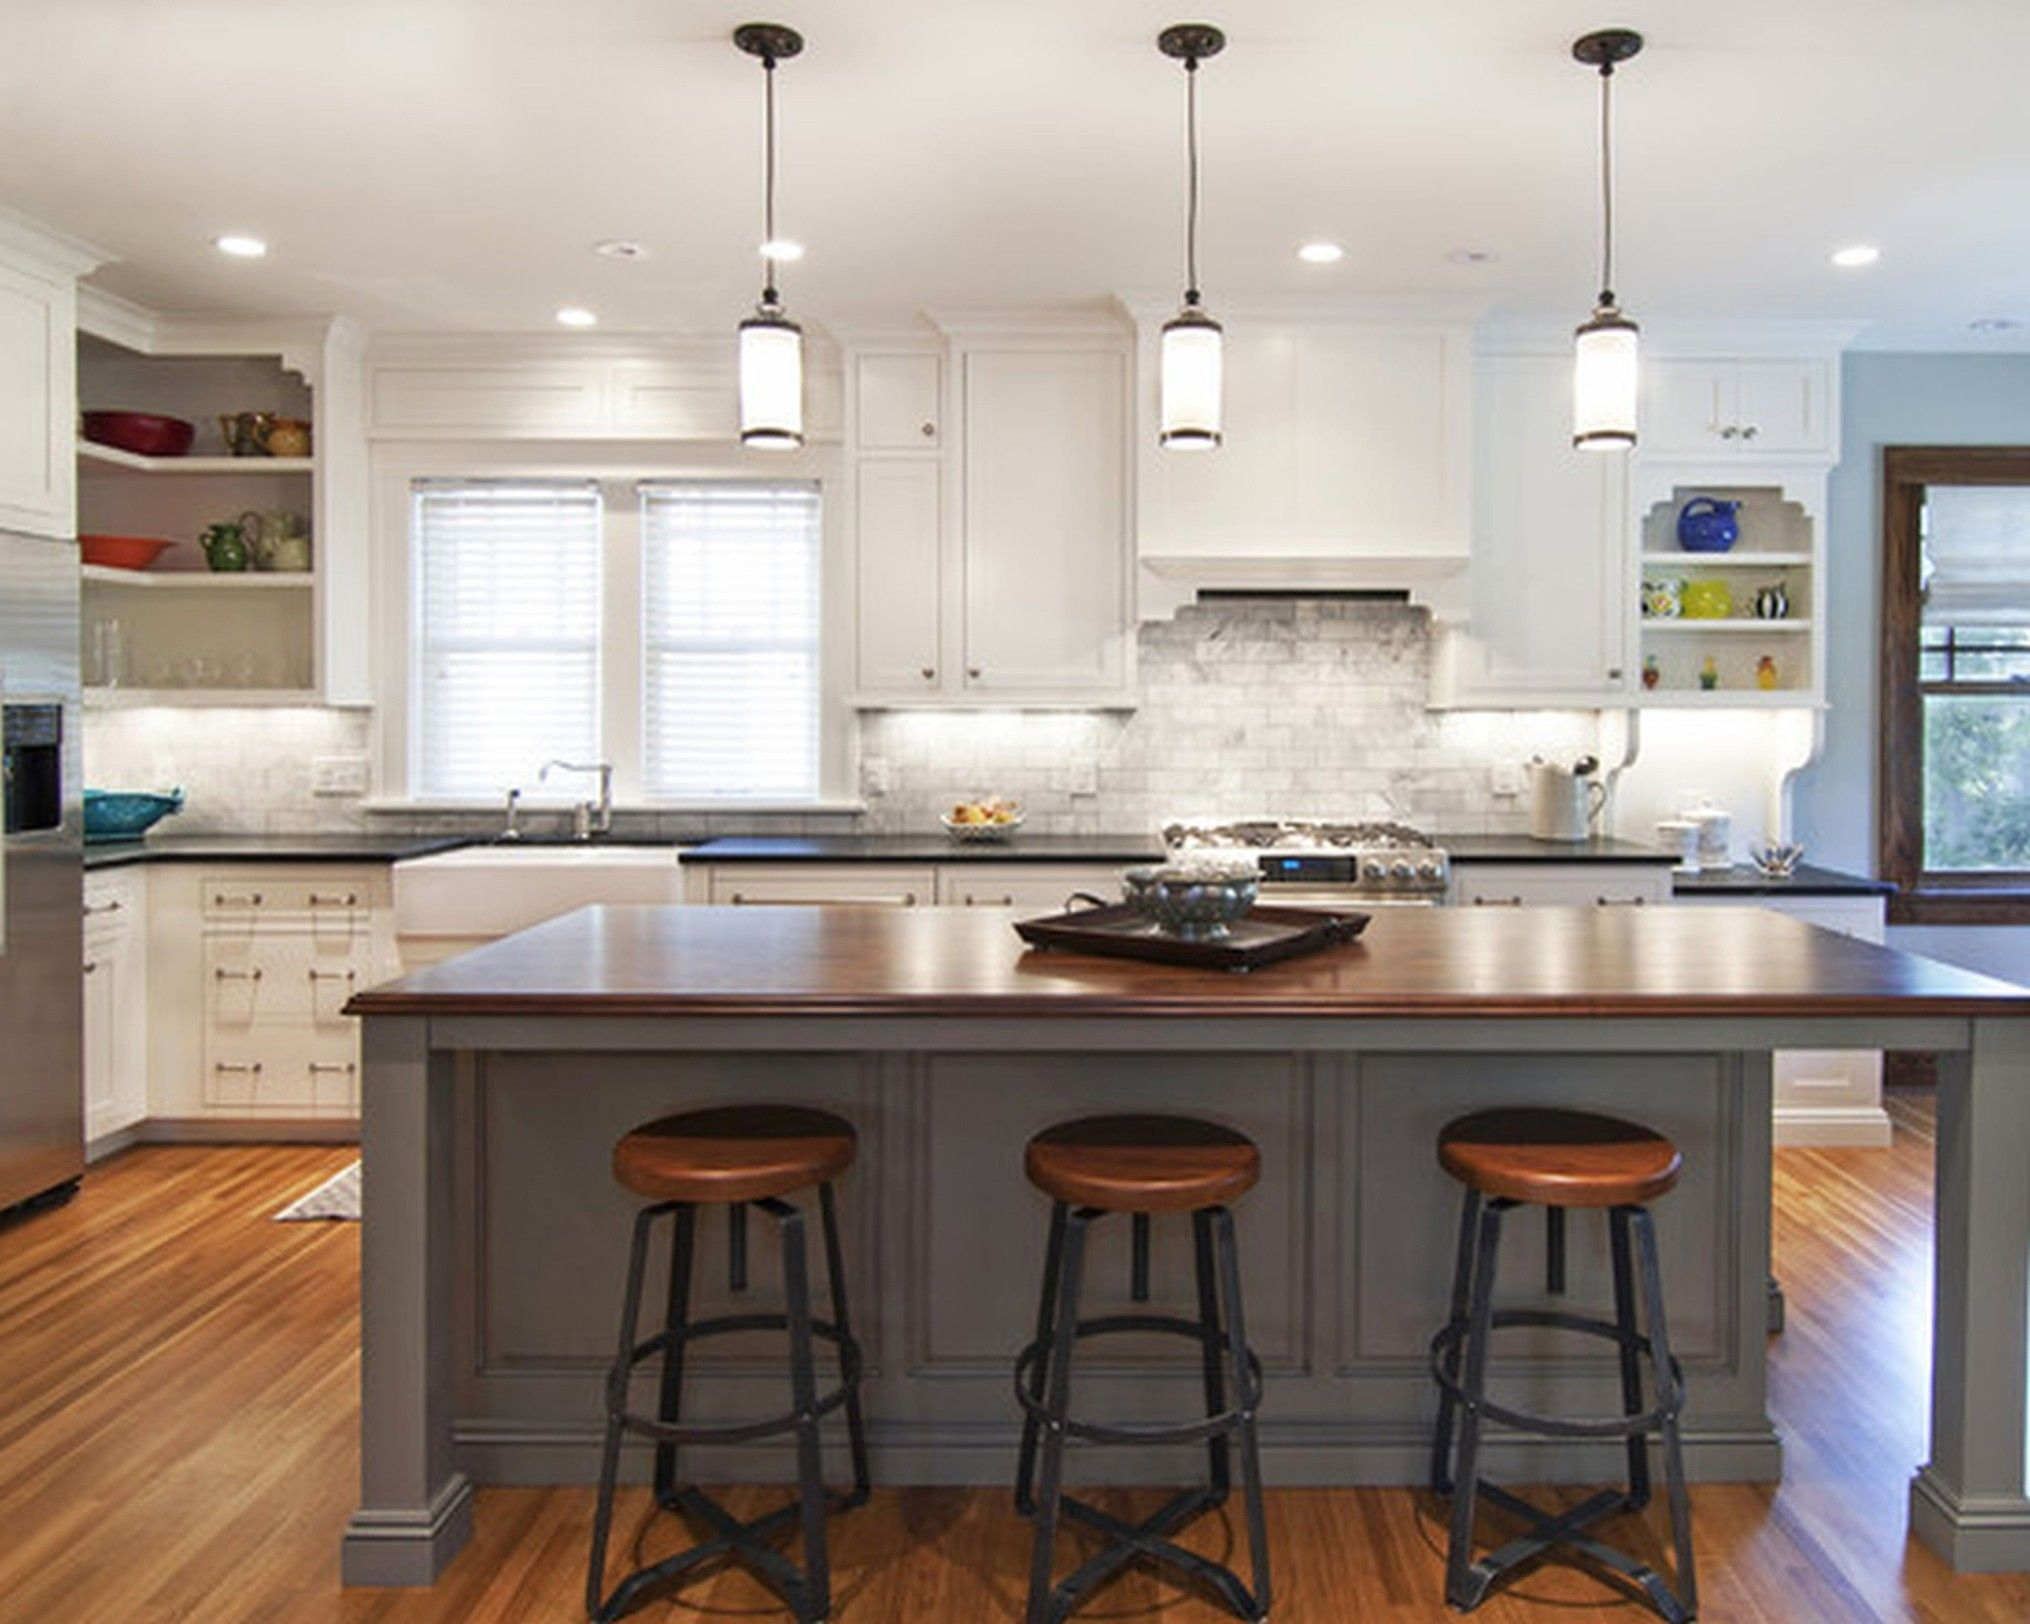 kitchen-furniture-three-tube-glass-shade-mini-pendant-lamps-over ...